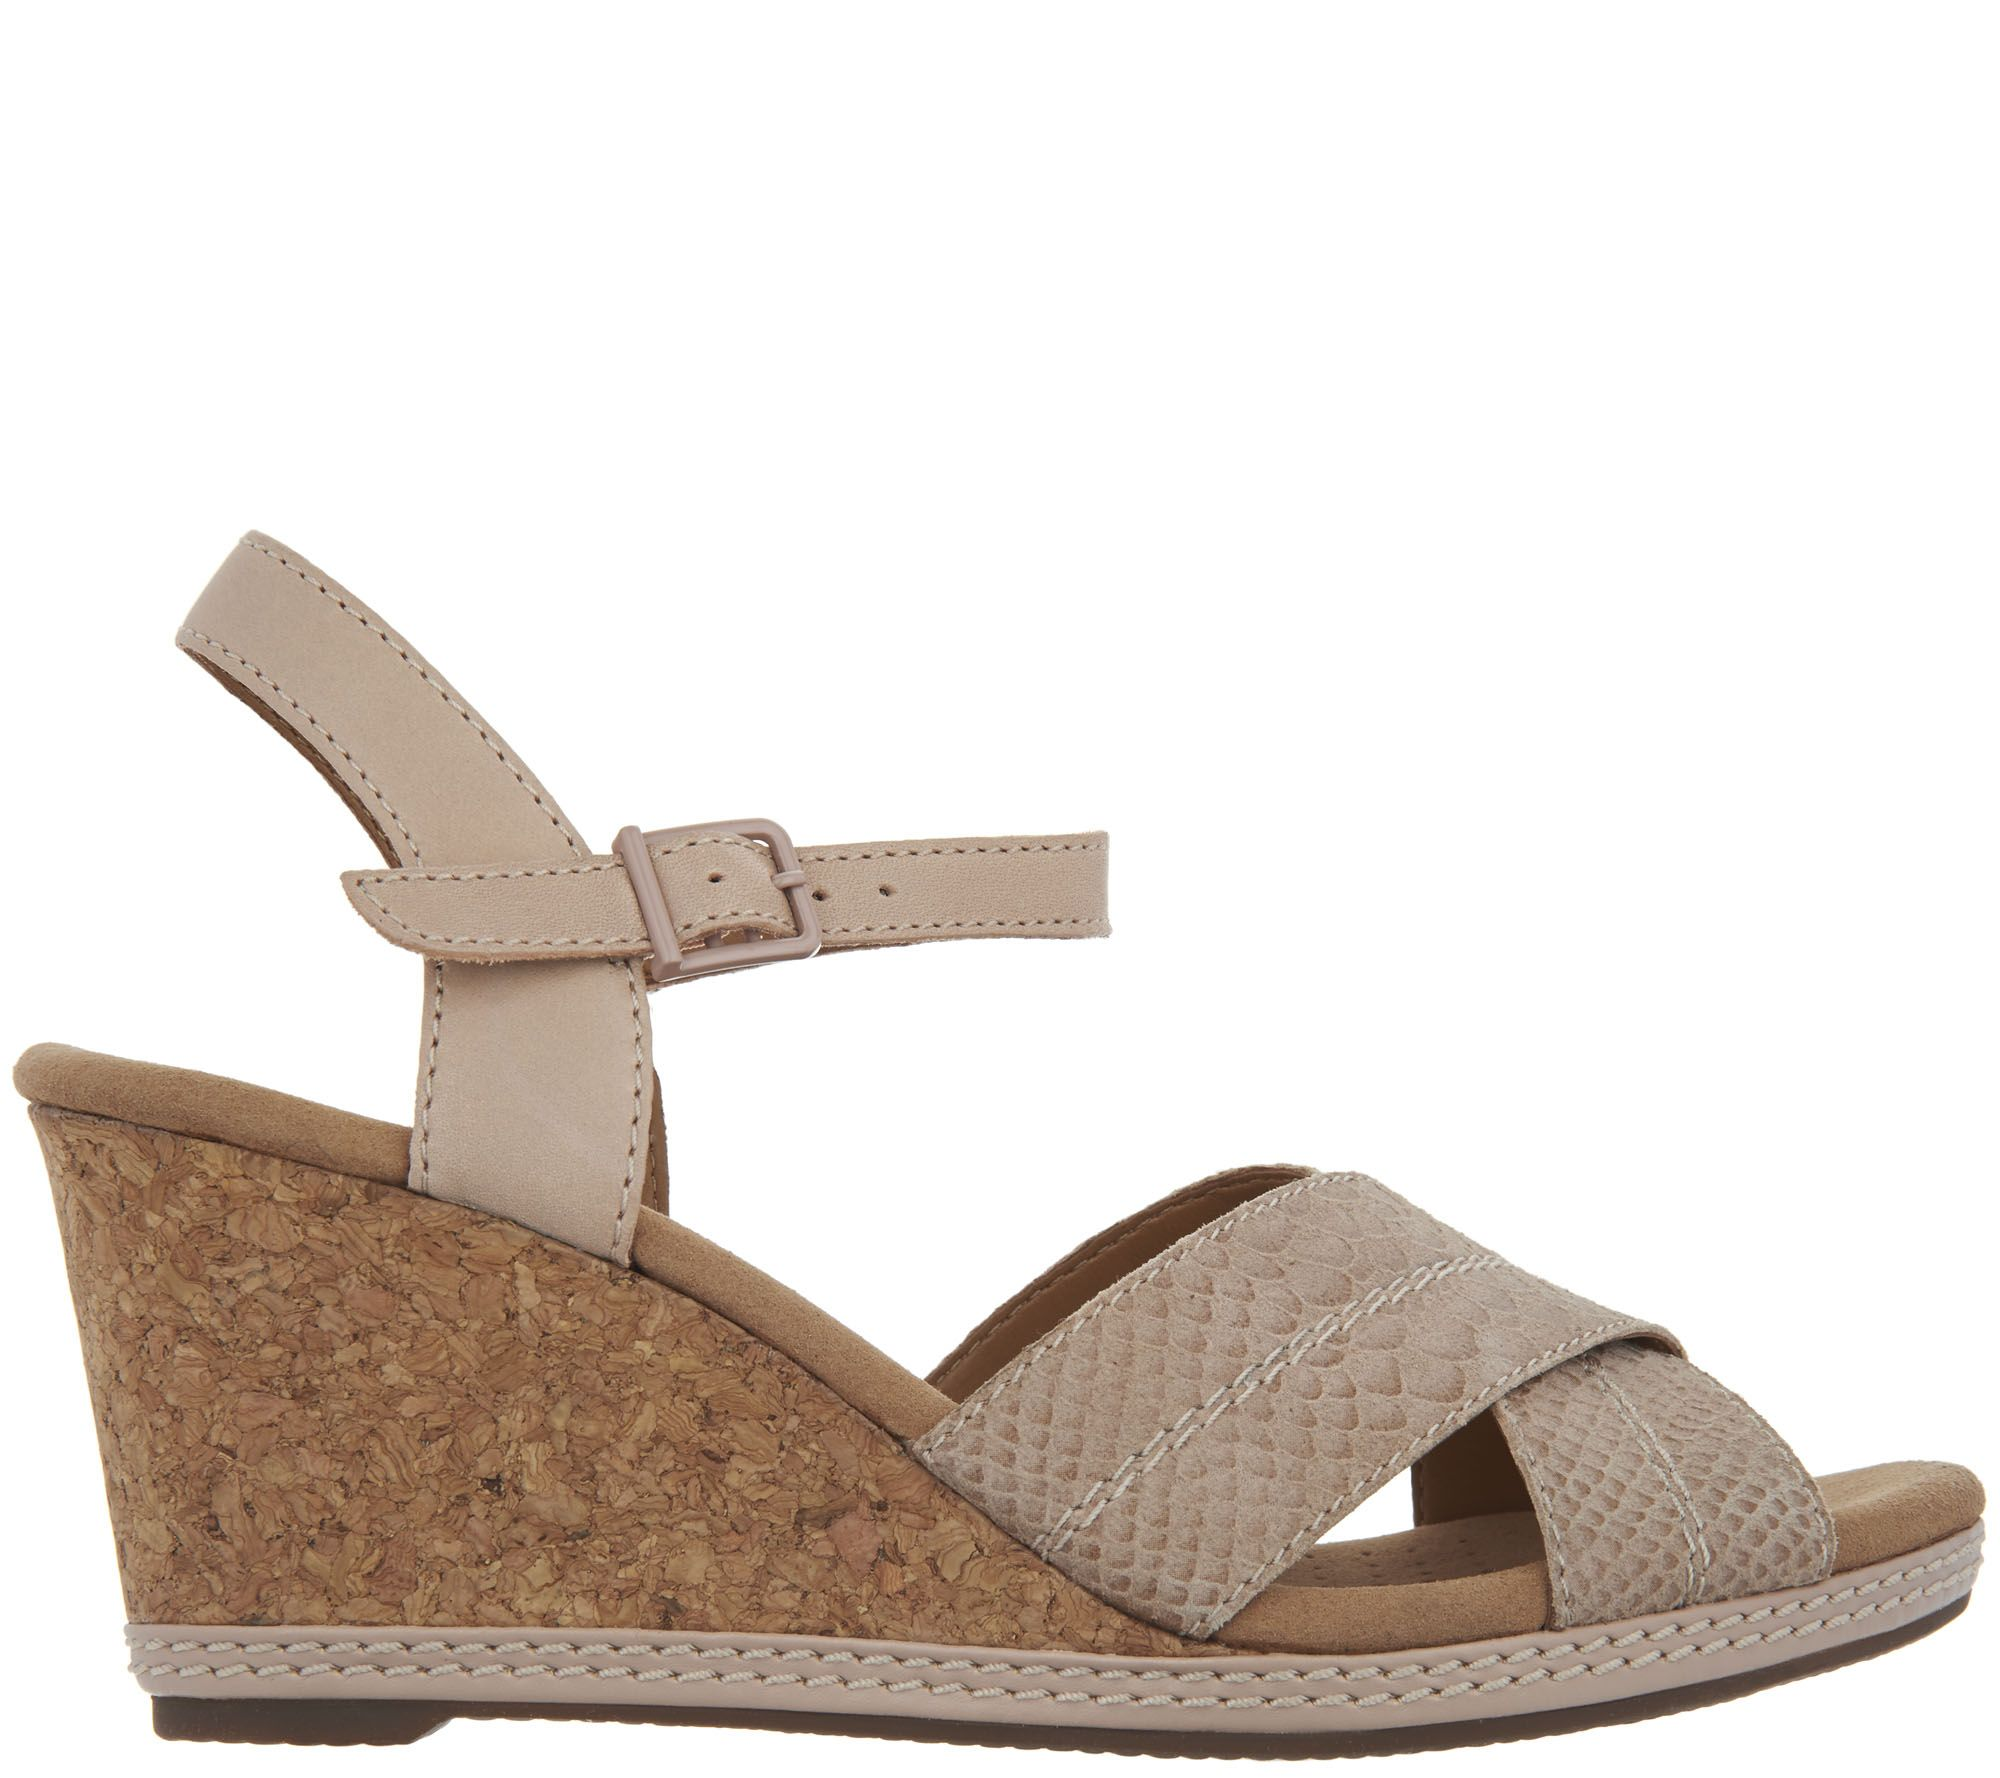 41d0ab08865 Clarks Leather Cork Wedge Sandals - Helio Latitude - Page 1 — QVC.com